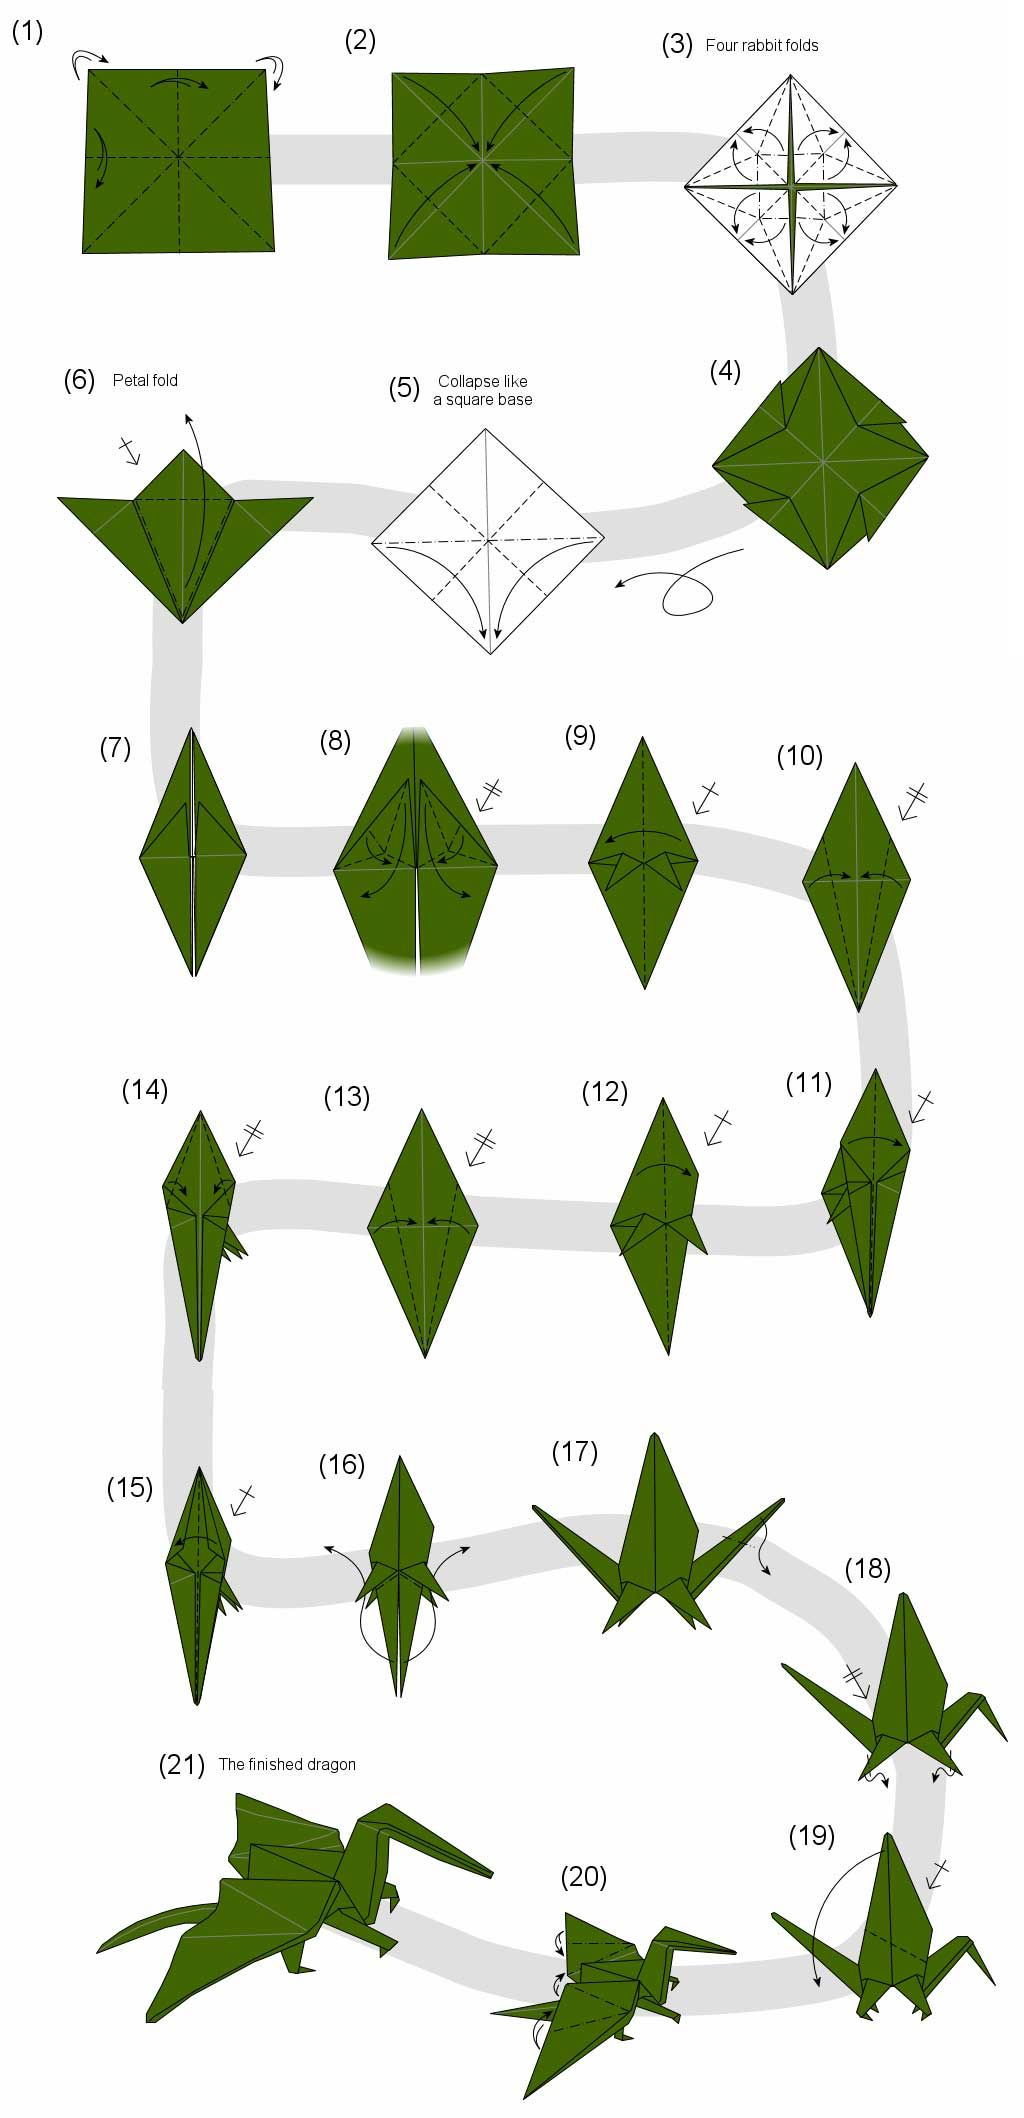 How To Make An Origami Dragon : origami, dragon, Dragon01.jpg, (1024×2118), Paper, Crafts, Origami,, Origami, Diagrams